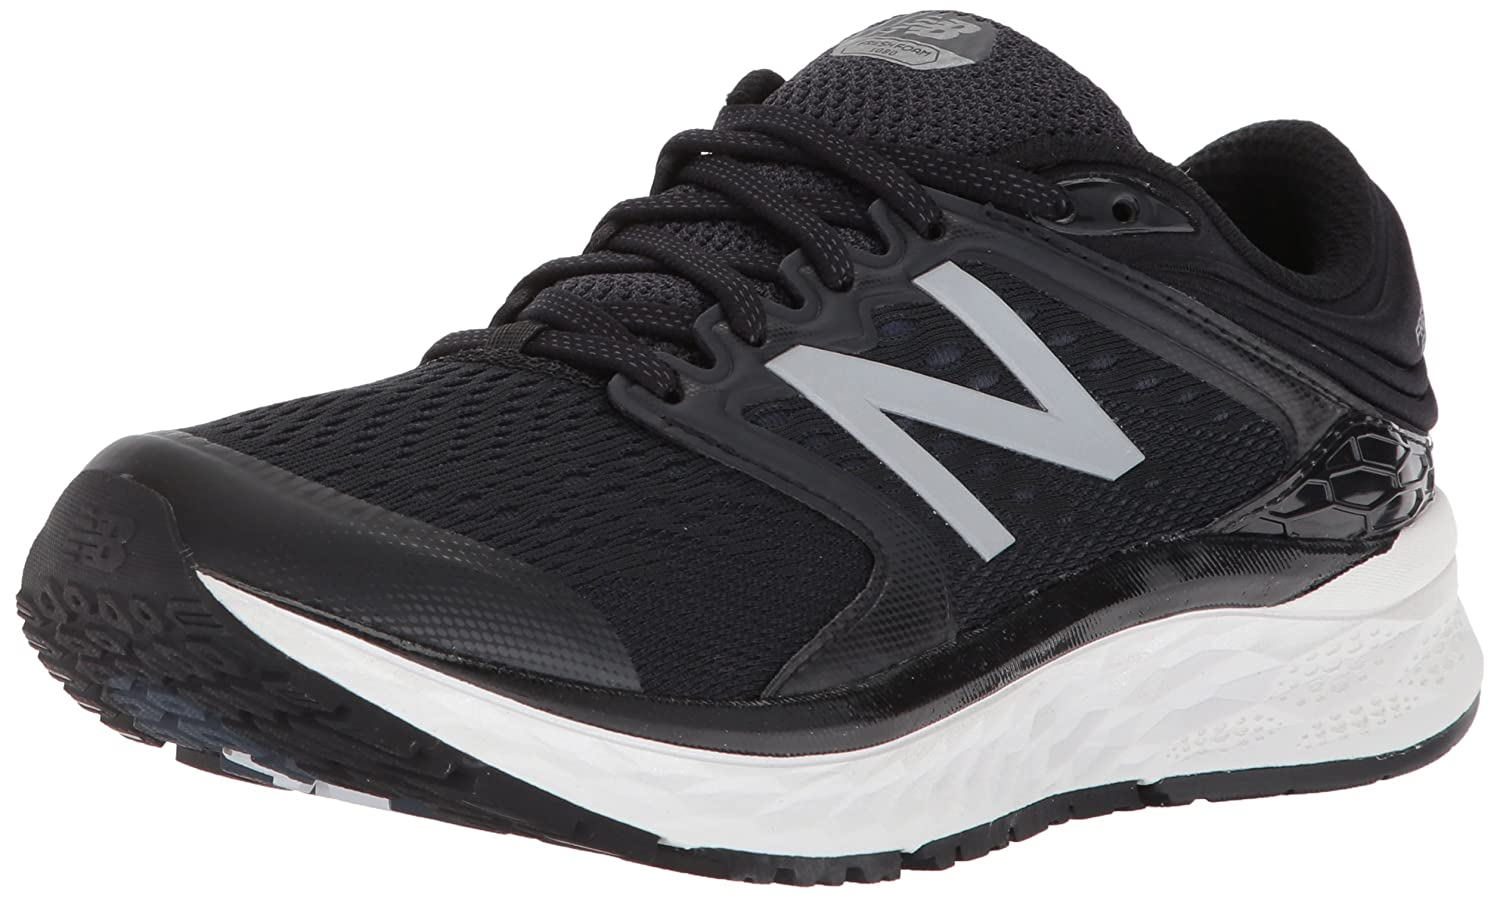 New Balance Women's 1080v8 Fresh Foam Running Shoe B01N2XM9RB 13 2A US|Black/White